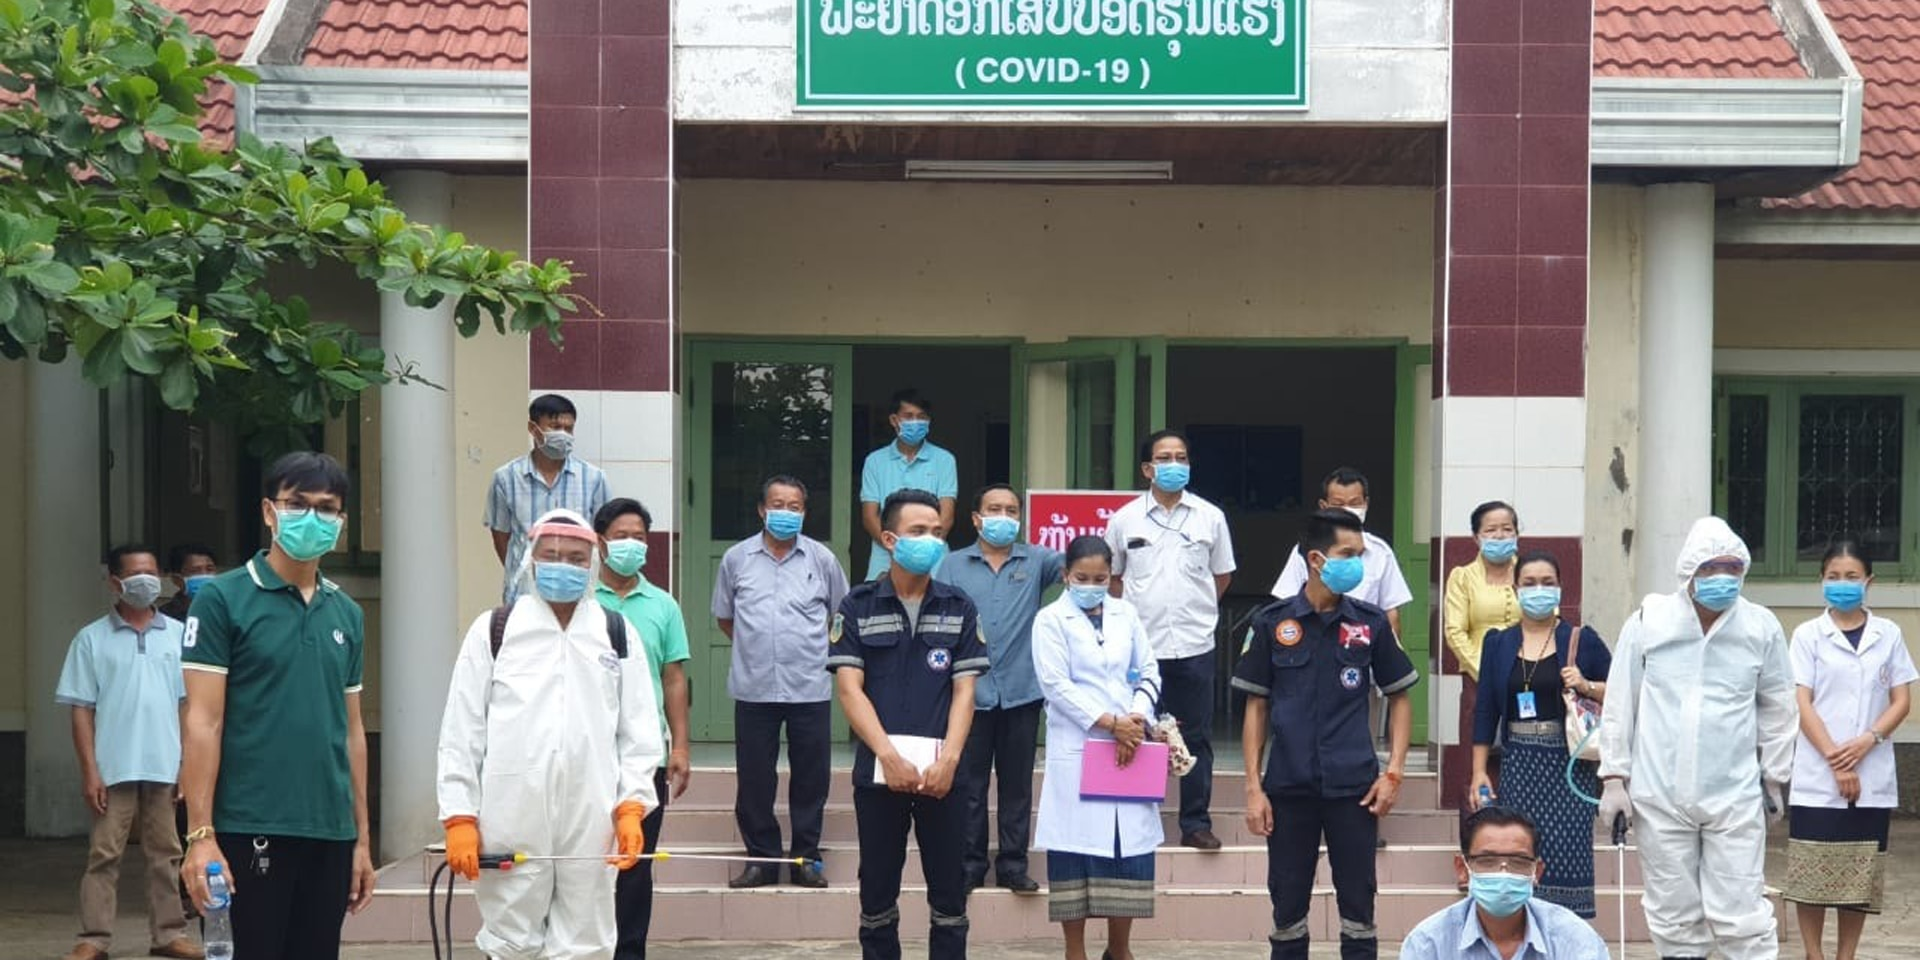 The staff of a hospital in Laos stand in front of the entrance to a COVID-19 ward wearing protective masks.